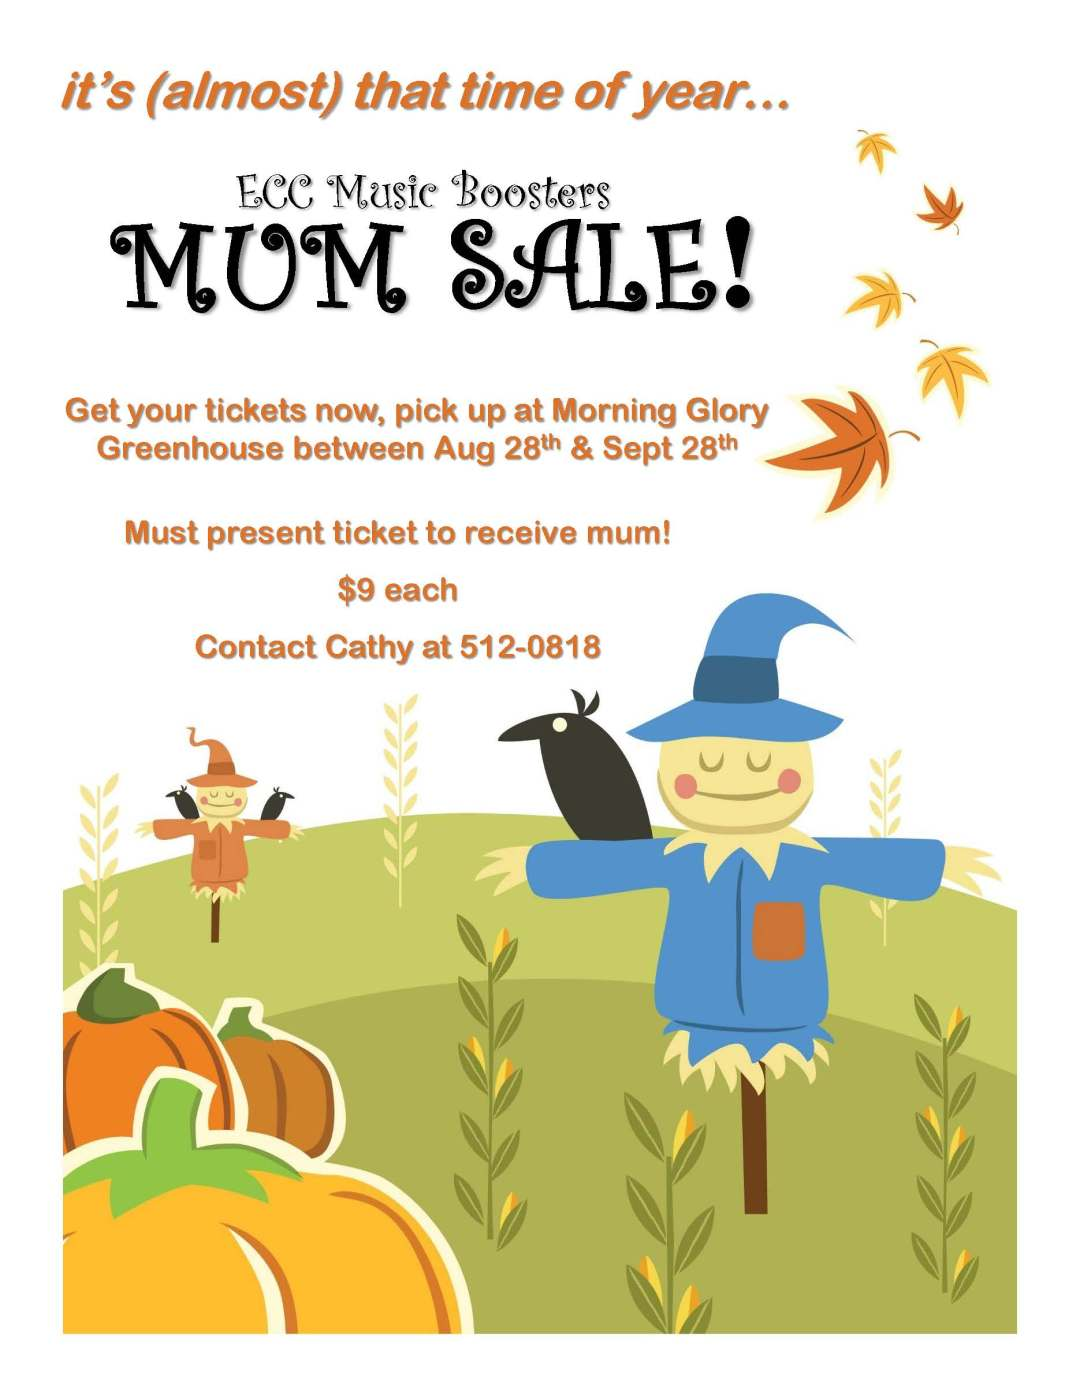 ECCSS-Music Boosters Mum Sale!